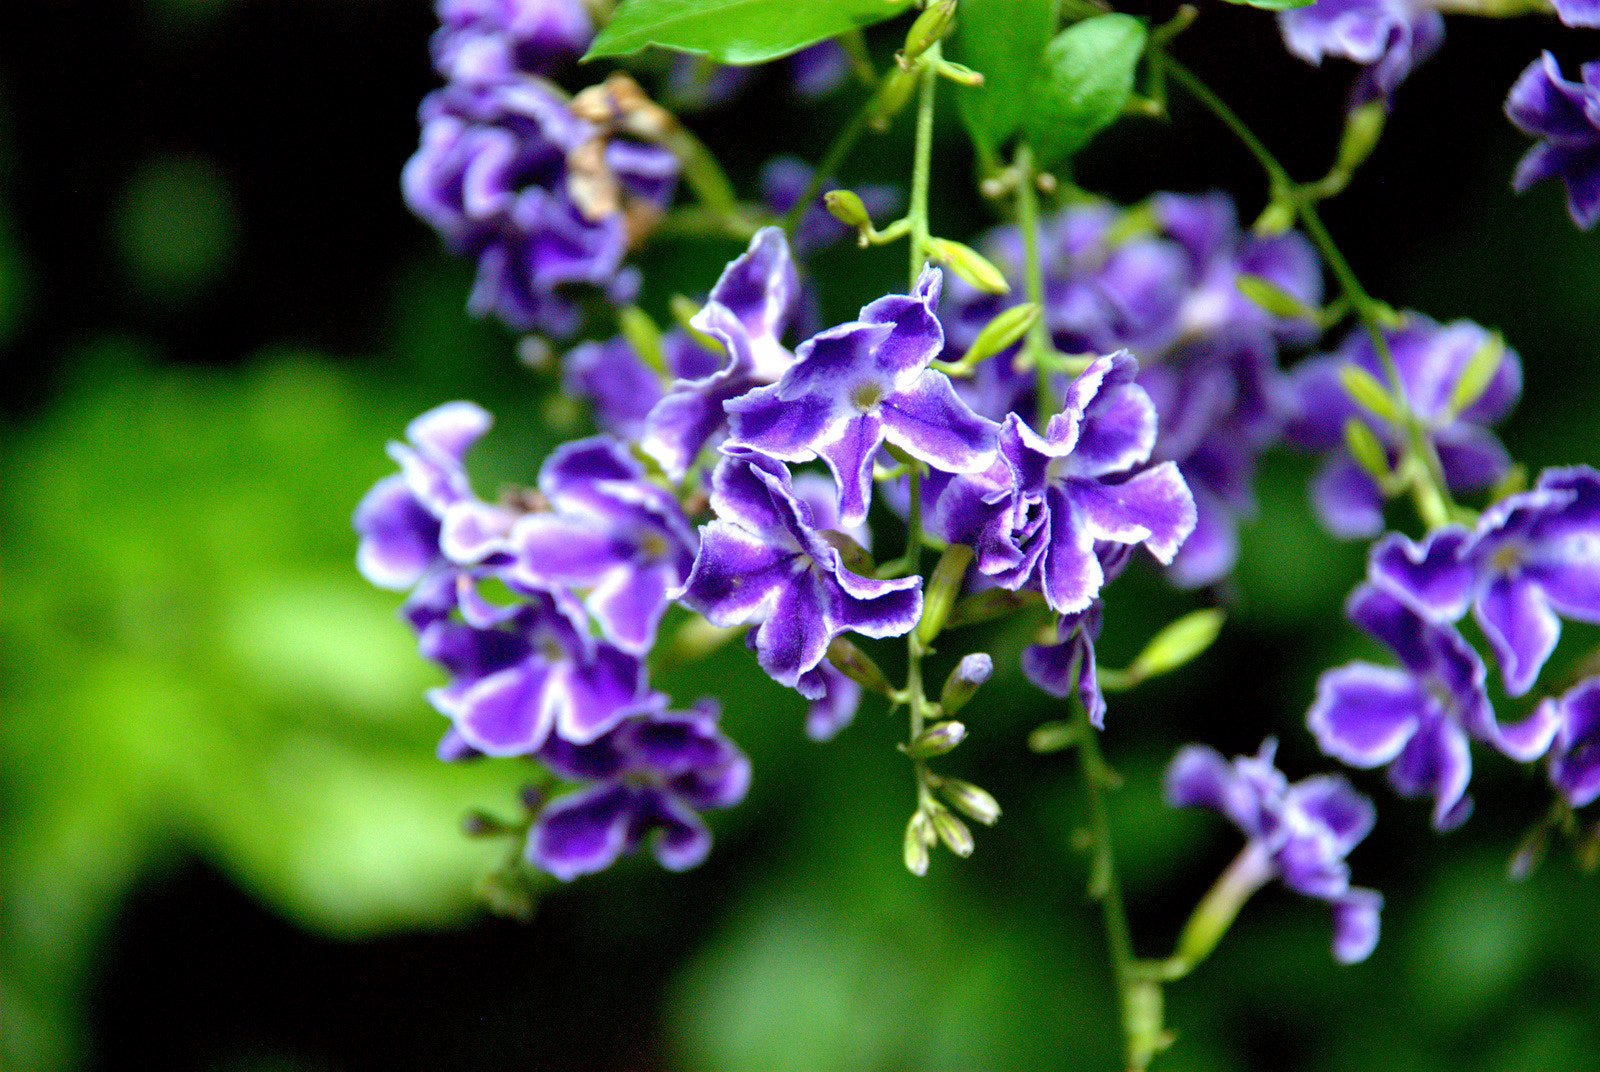 Photograph Purplez by Afrin Catalano on 500px